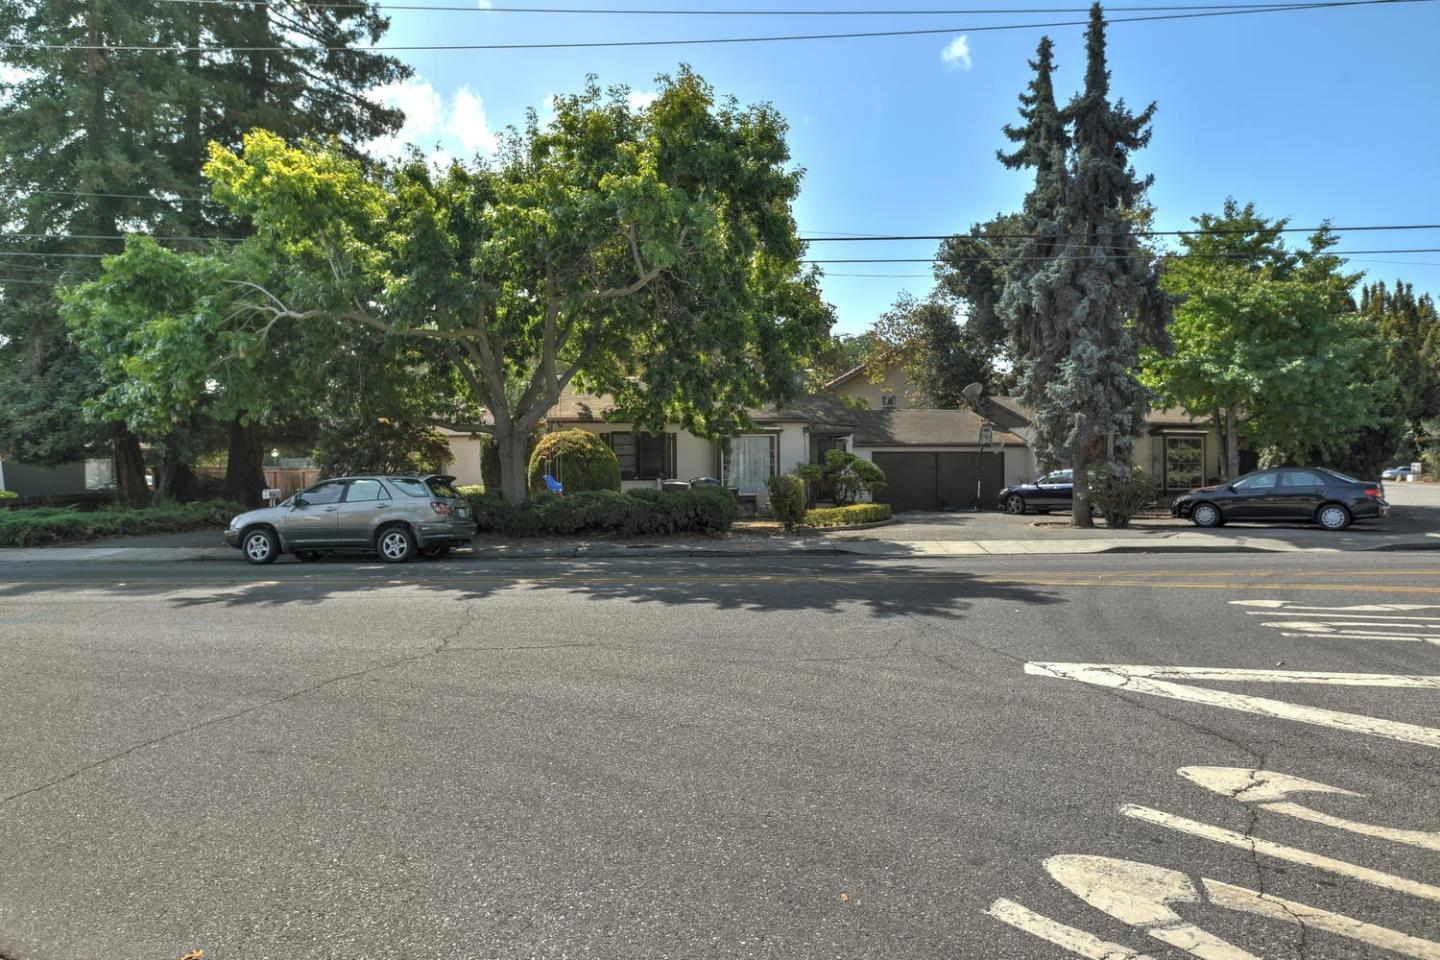 Multi-Family Home for Sale at 41 Gladys Avenue 41 Gladys Avenue Mountain View, California 94043 United States